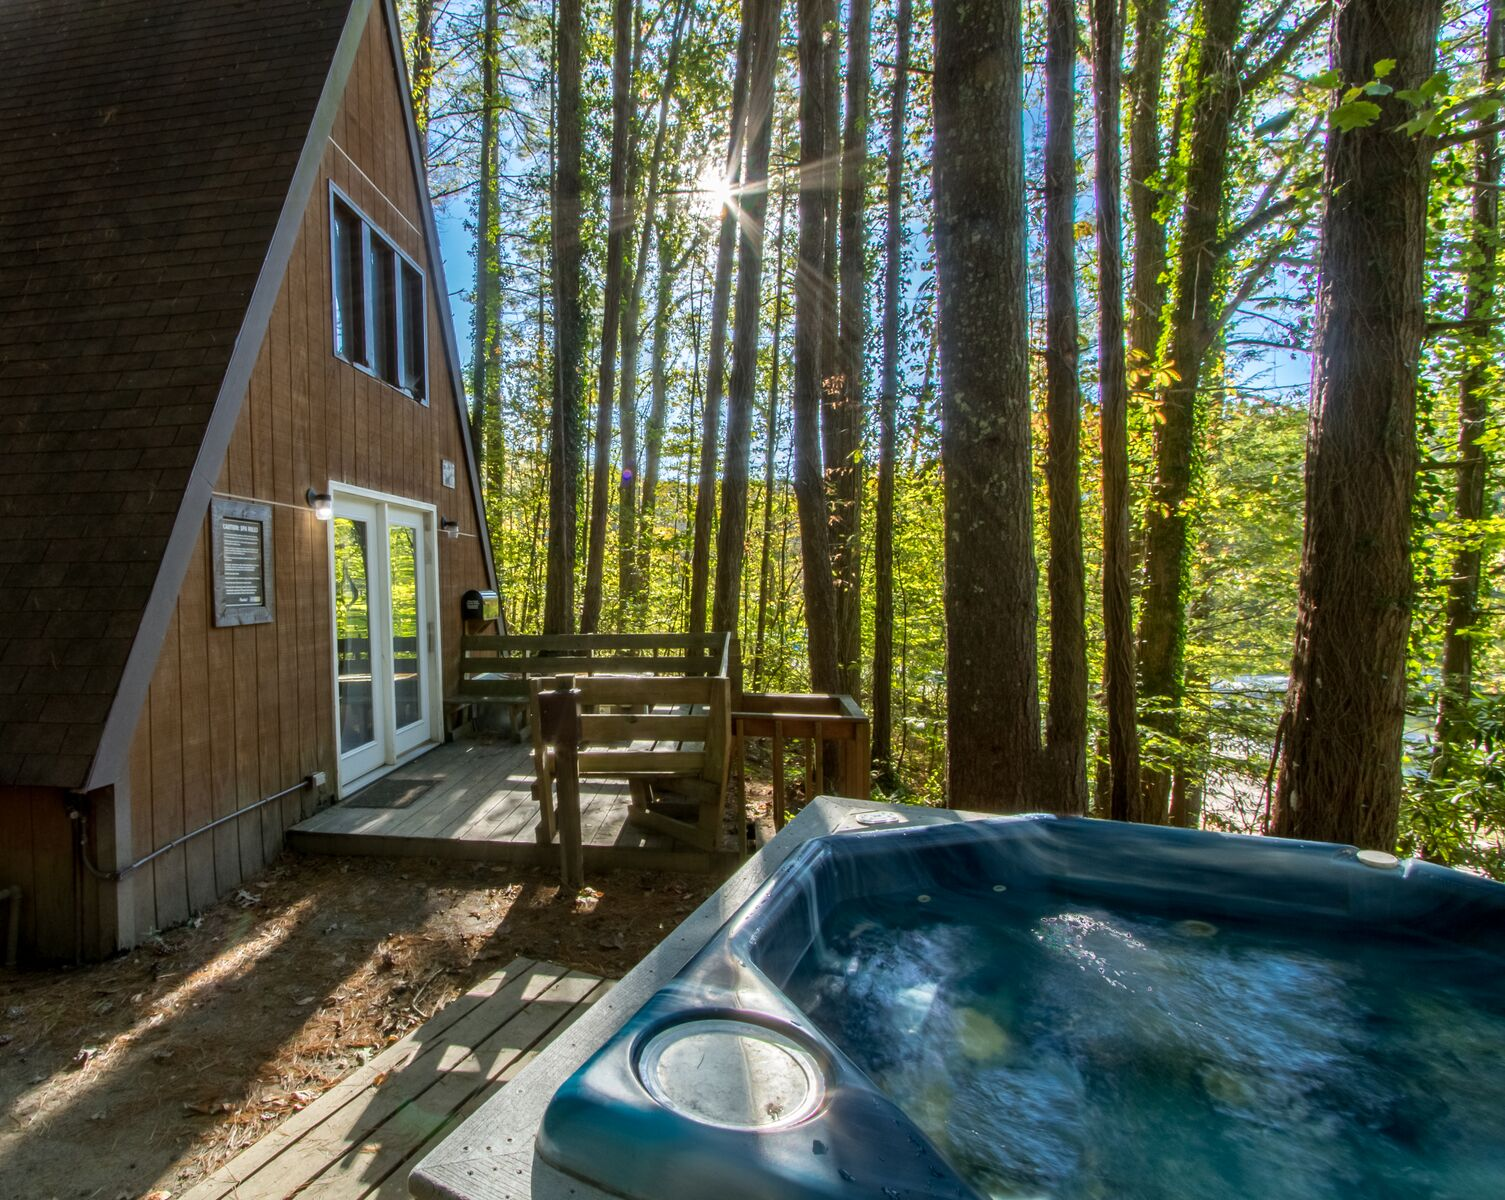 The relaxing hot tub on the porch of an A-Frame chalet